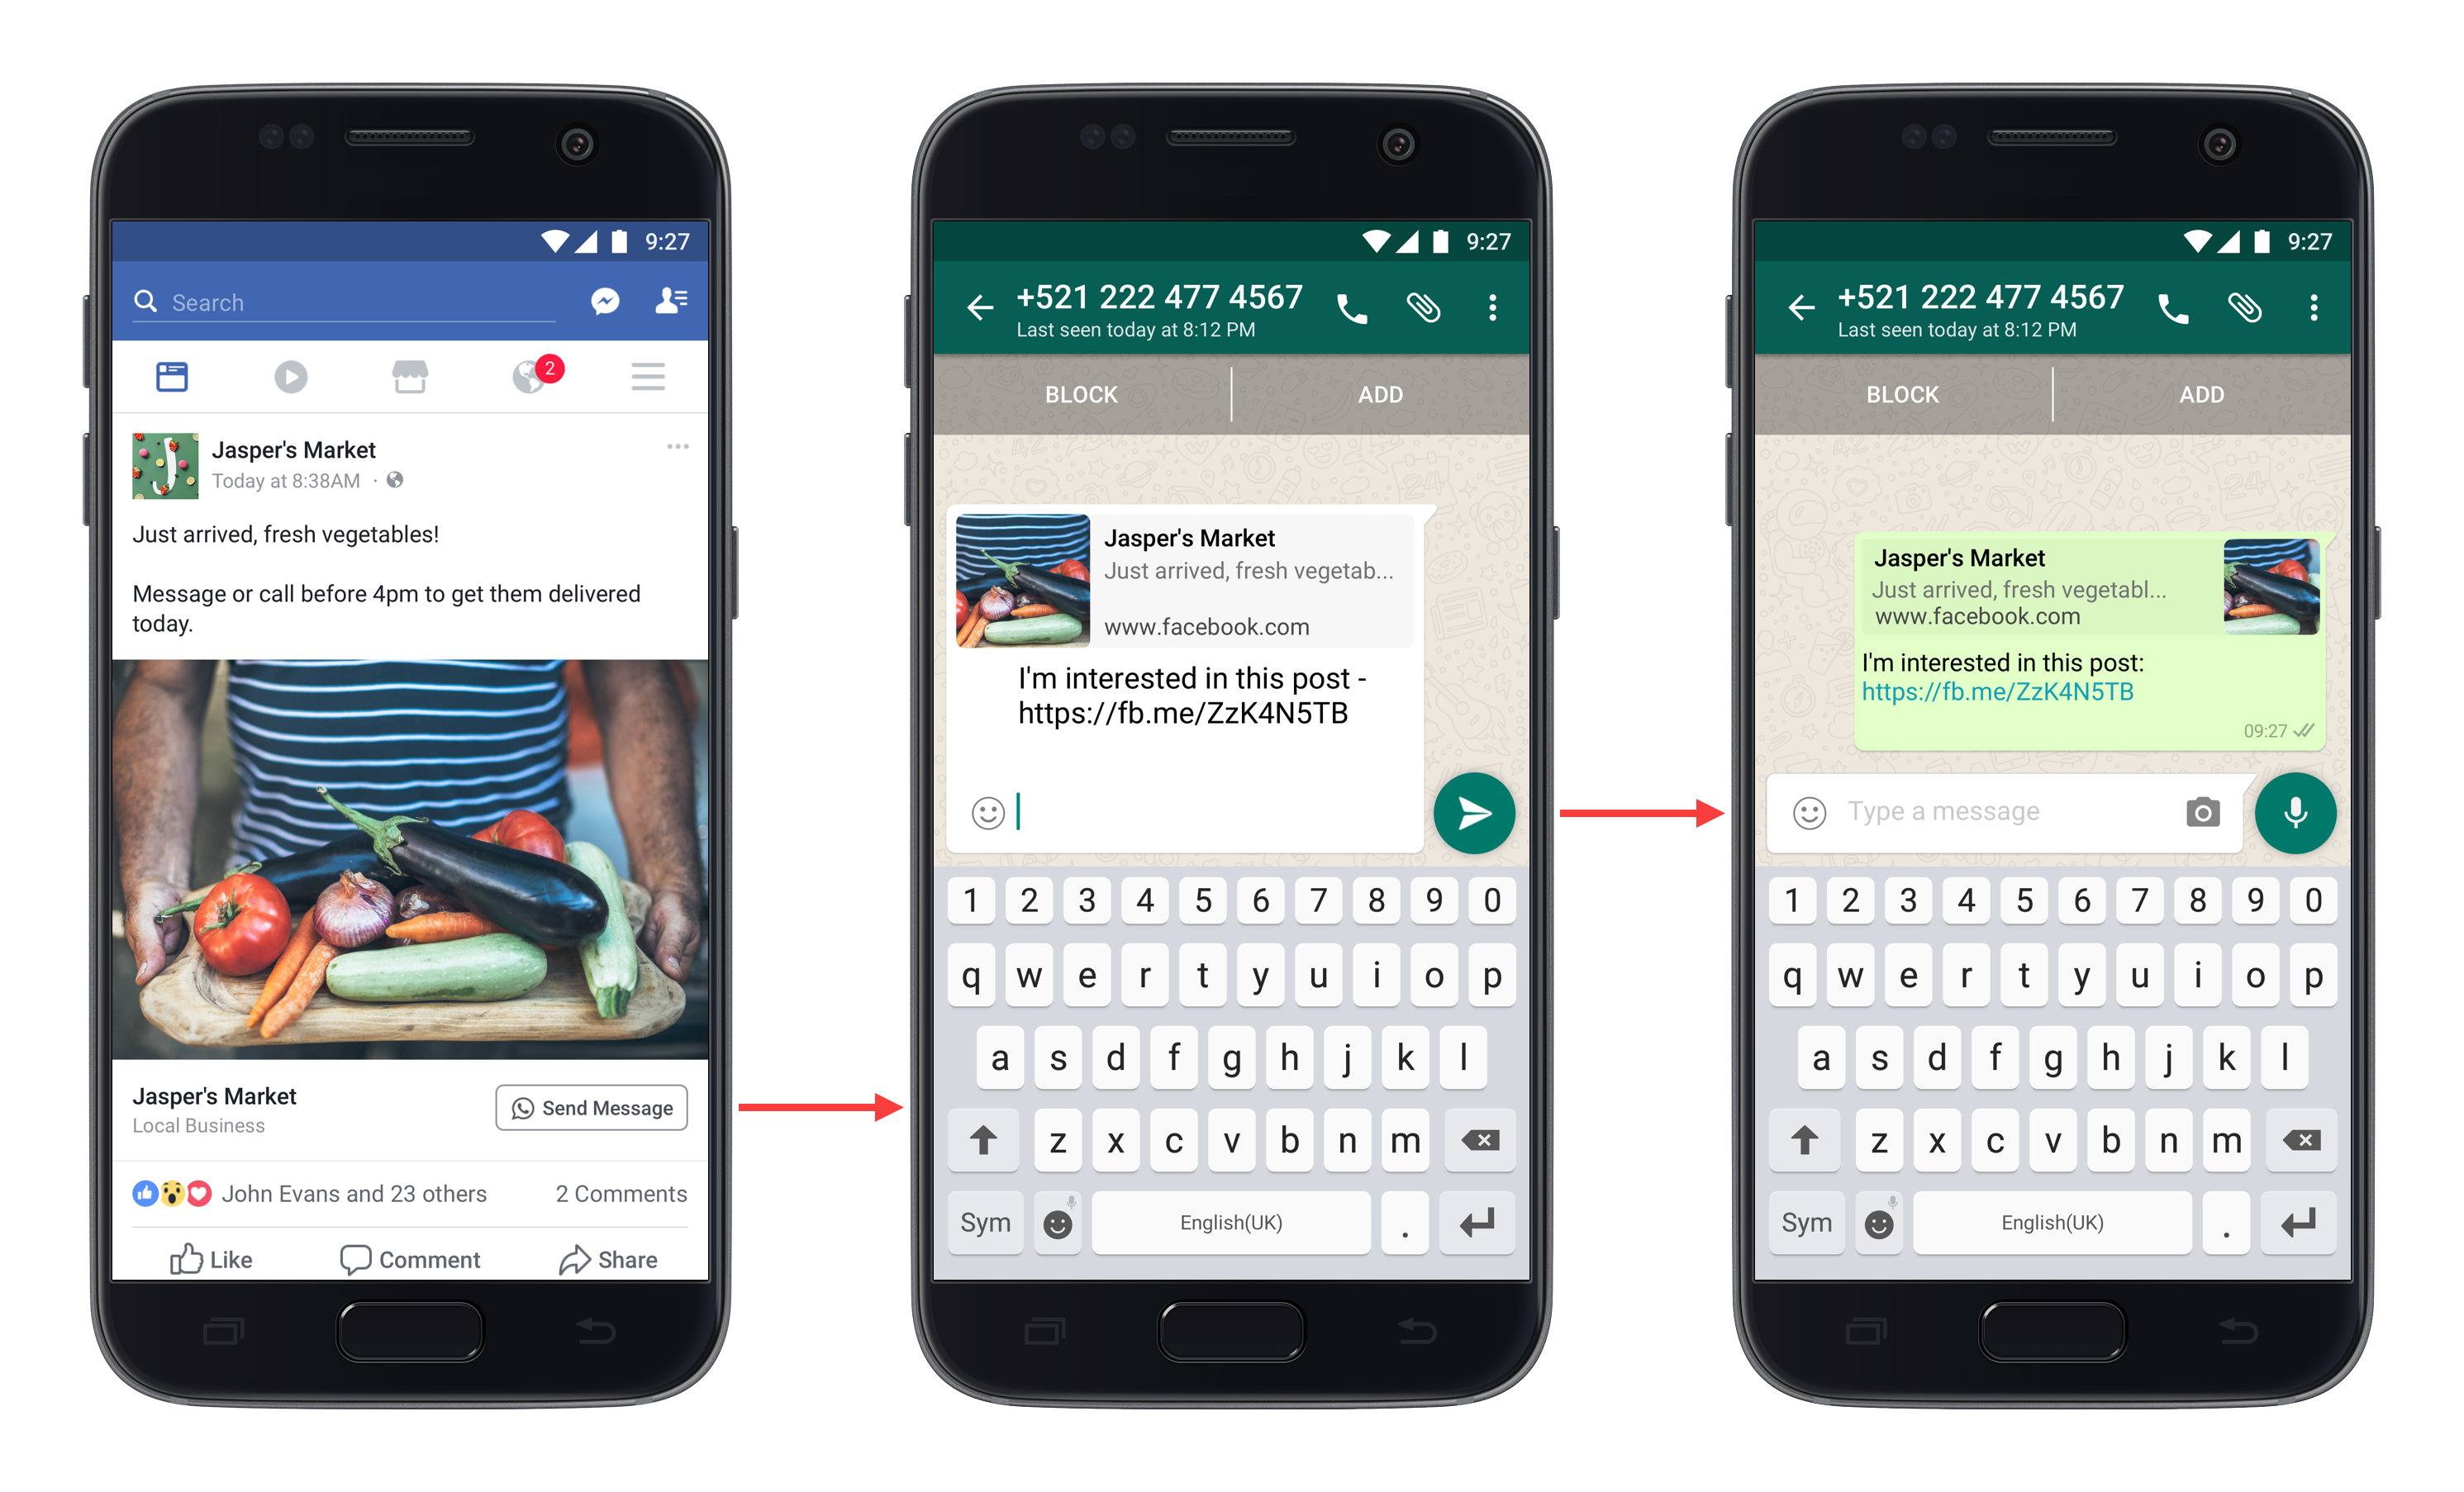 WhatsApp Launches Campaign in India to Spot Fake Messages